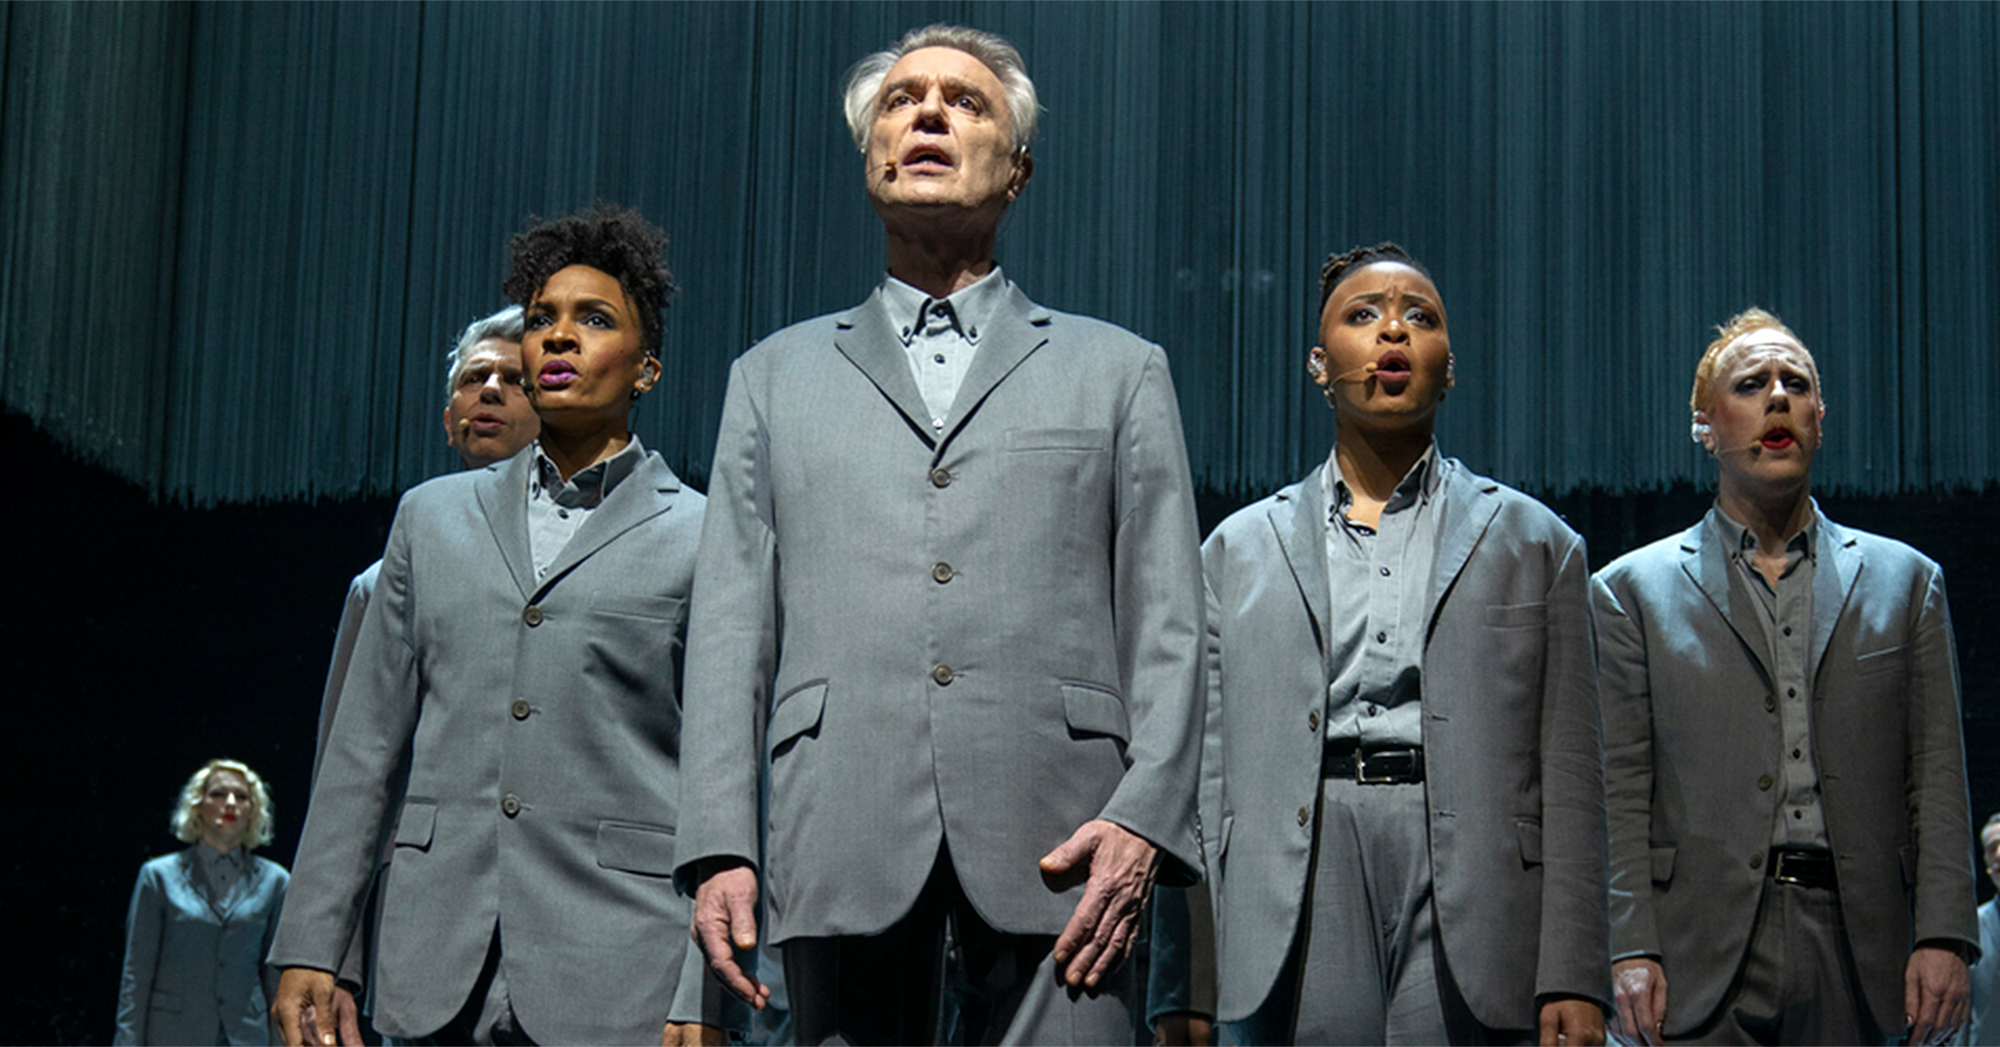 David Byrne and cast from American Utopia. Credit